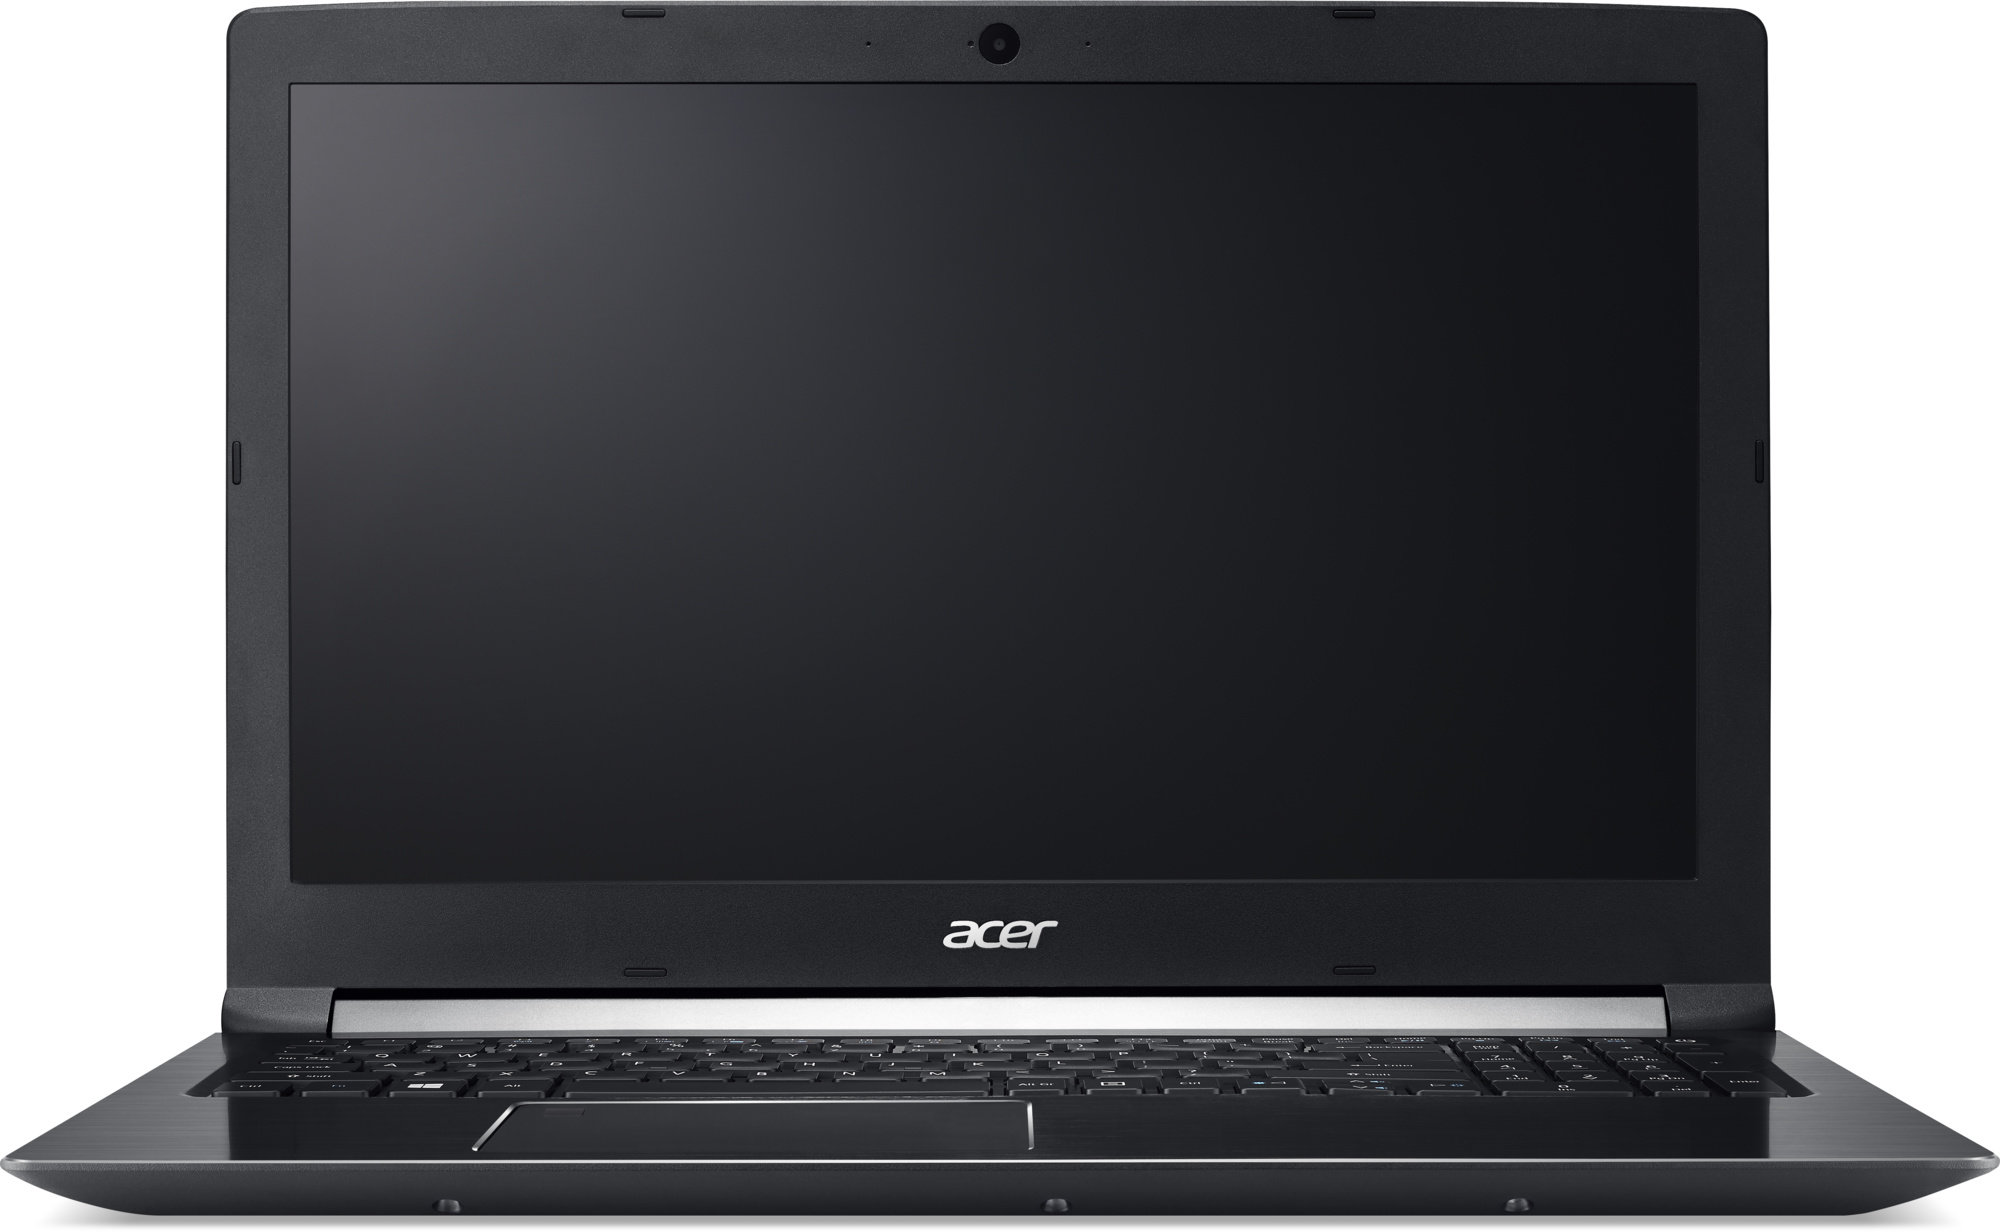 "Acer Aspire 7 (A715-71G-52GT) i5-7300HQ/8 GB+N/256GB SSD M.2+N/GTX 1050 2GB/15.6"" FHD IPS LED matný/W10Home/Black"